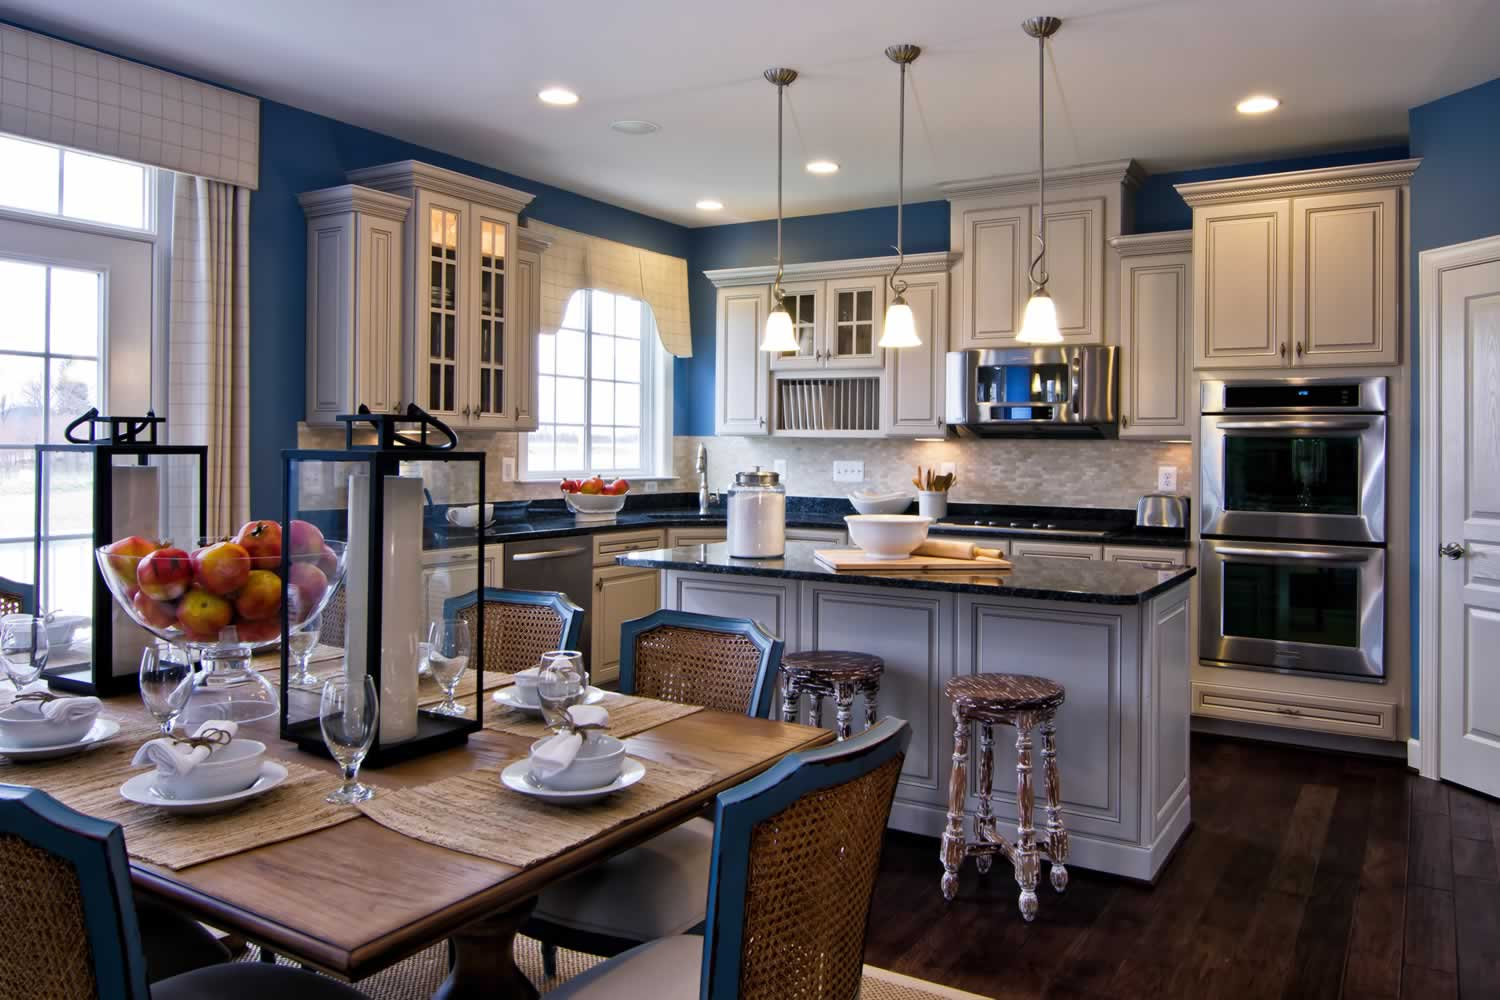 Homes For Sale With Gourmet Kitchens In Maryland